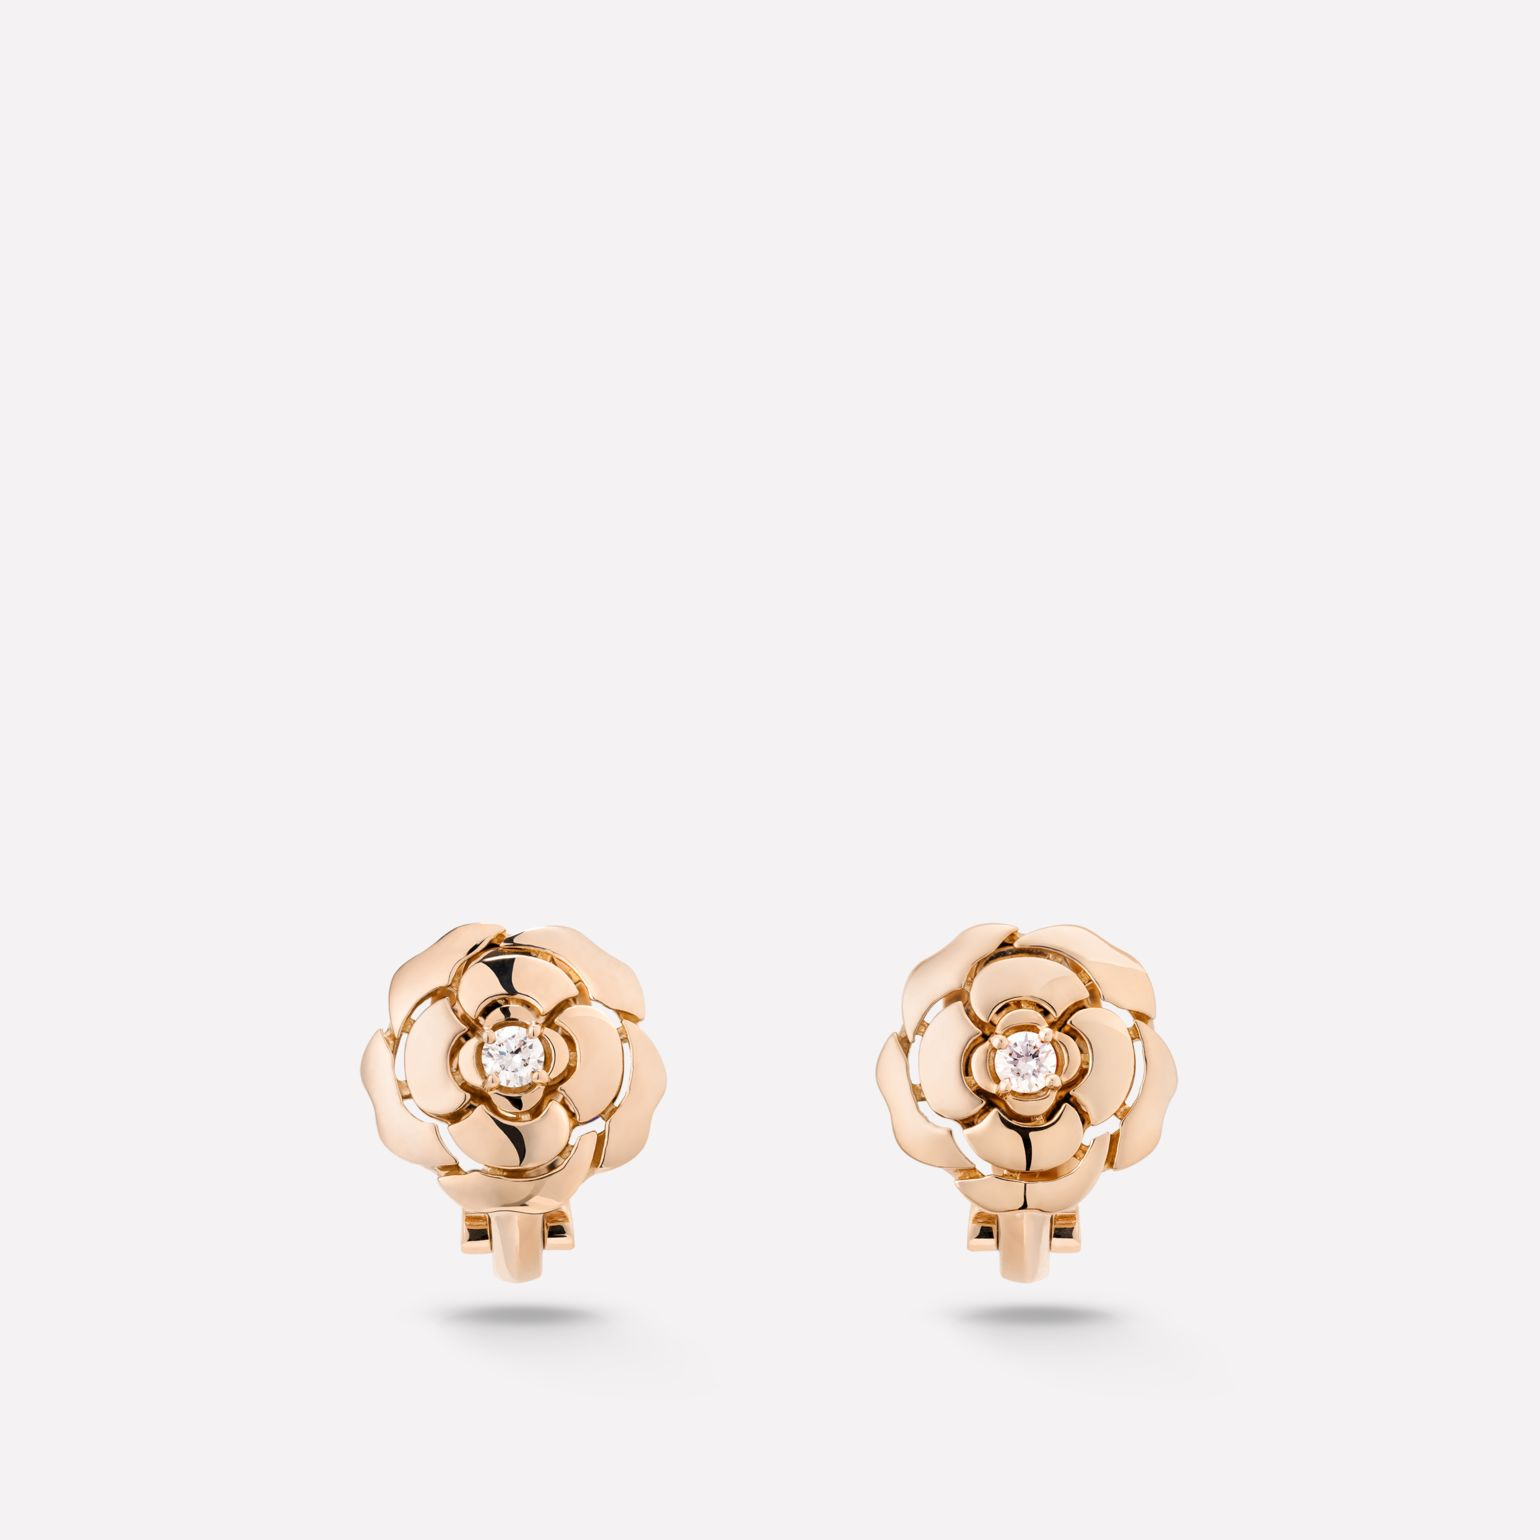 Extrait de Camélia earrings Extrait de Camélia ear studs in 18K pink gold with central diamonds